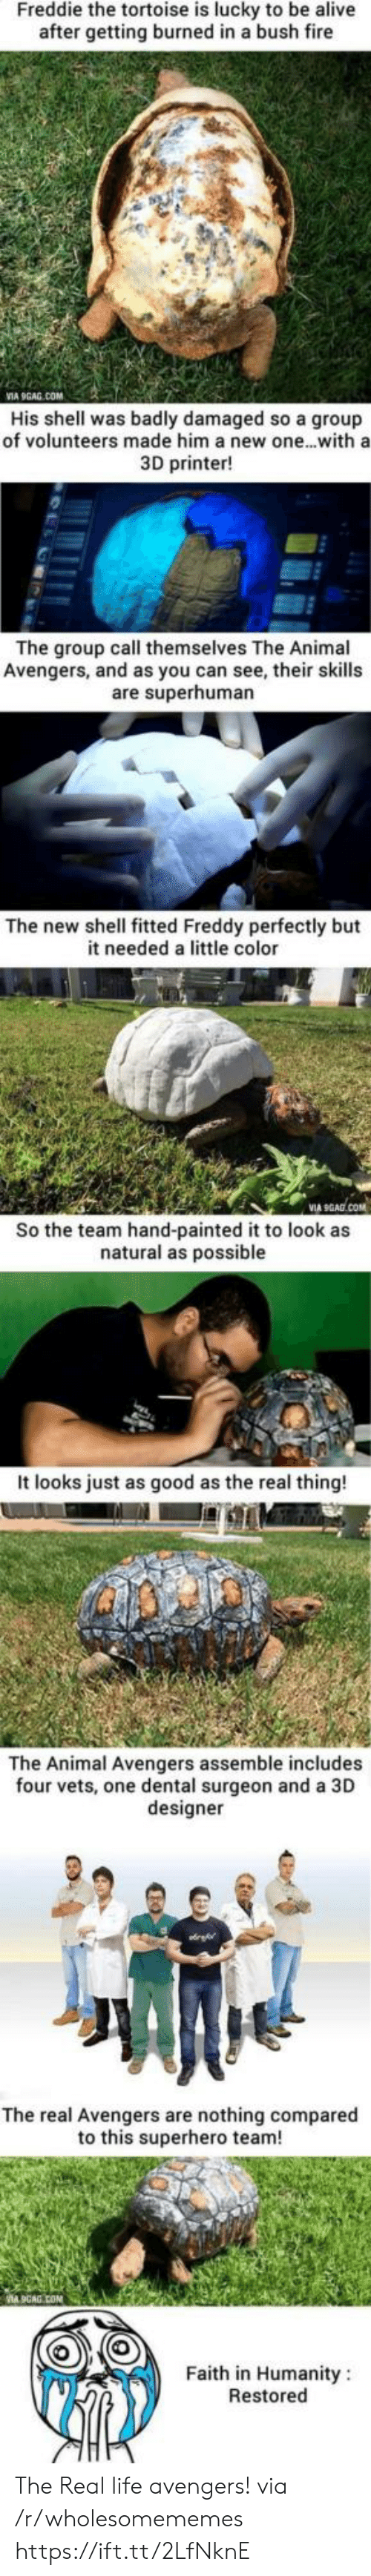 9gag, Alive, and Fire: Freddie the tortoise is lucky to be alive  after getting burned in a bush fire  VIA 9GAG.COM  His shell was badly damaged so a group  of volunteers made him a new one...with a  3D printer!  The group call themselves The Animal  Avengers, and as you can see, their skills  are superhuman  The new shell fitted Freddy perfectly but  it needed a little color  So the team hand-painted it to look as  natural as possible  It looks just as good as the real thing!  The Animal Avengers assemble includes  four vets, one dental surgeon and a 3D  designer  The real Avengers are nothing compared  to this superhero team!  Faith in Humanity  Restored The Real life avengers! via /r/wholesomememes https://ift.tt/2LfNknE